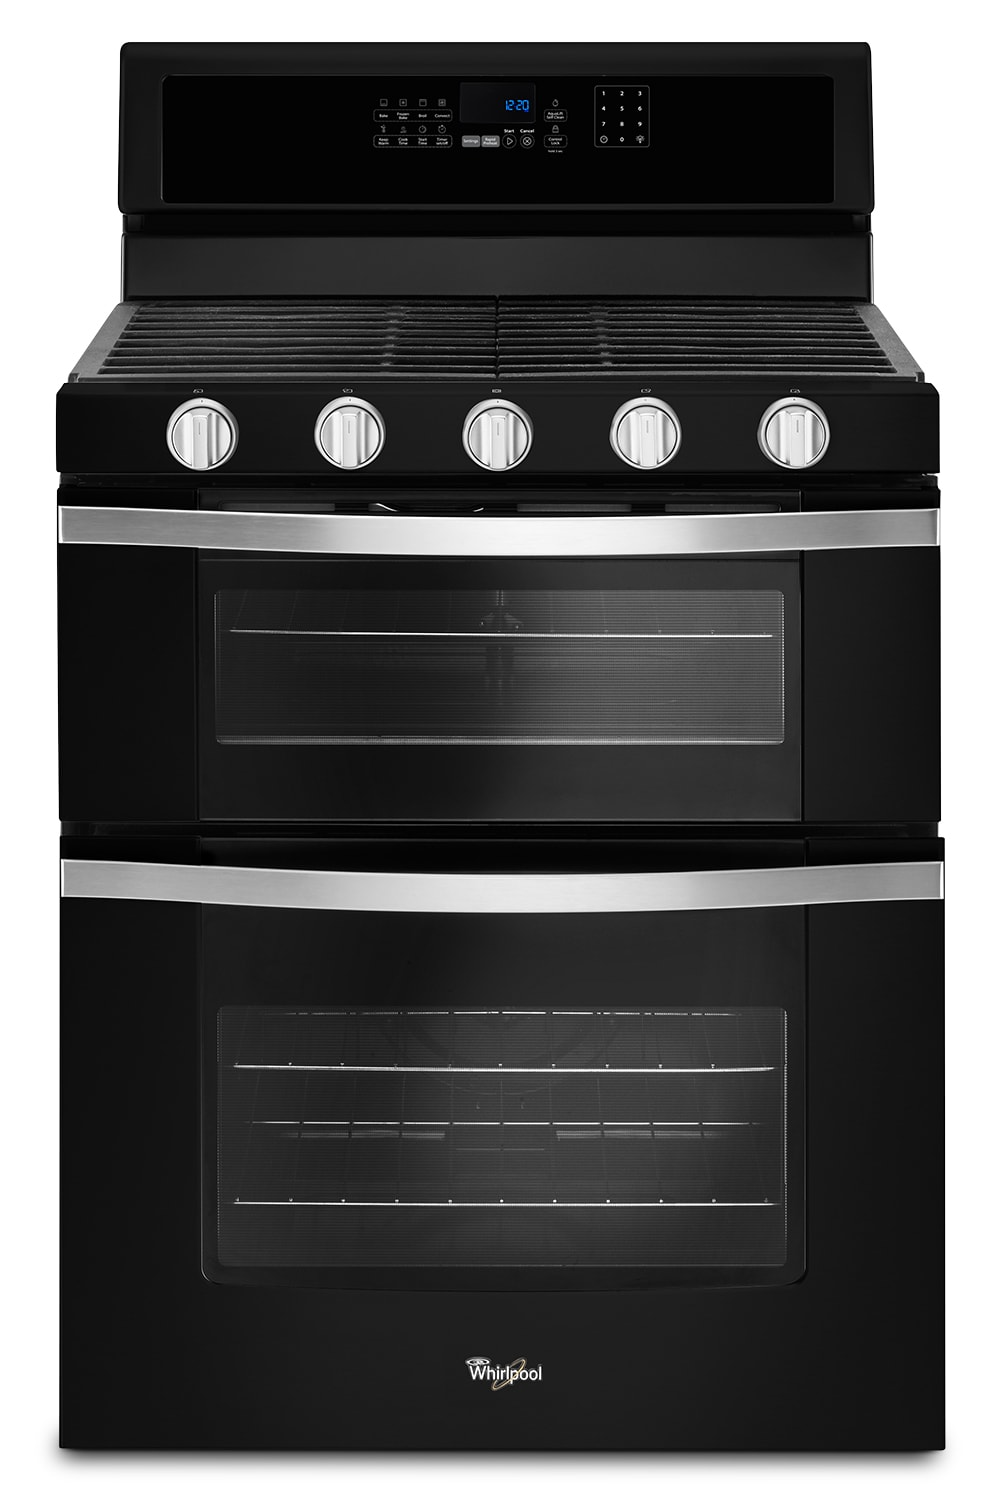 Cooking Products - Whirlpool Black Freestanding Double Gas Range (6.0 Cu. Ft.) - WGG745S0FE